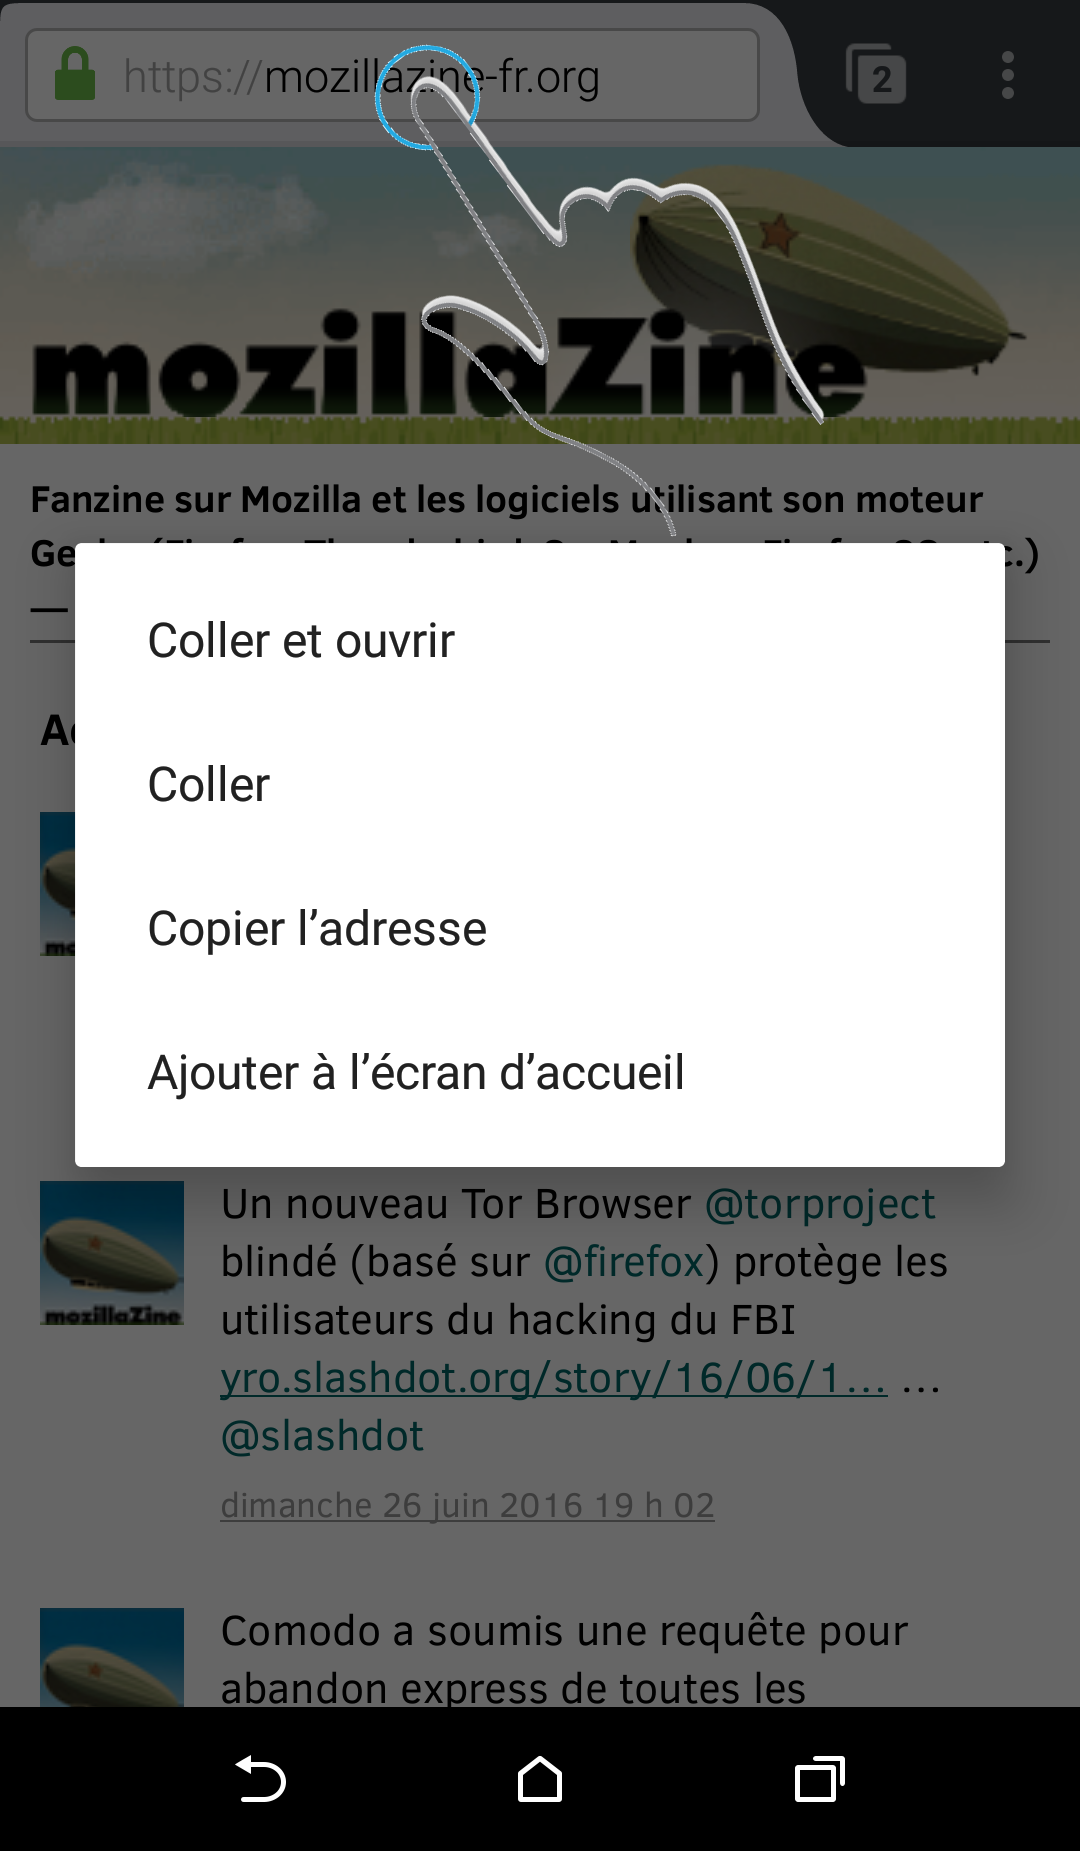 Firefox Android - copier l'adresse, coller et ouvrir